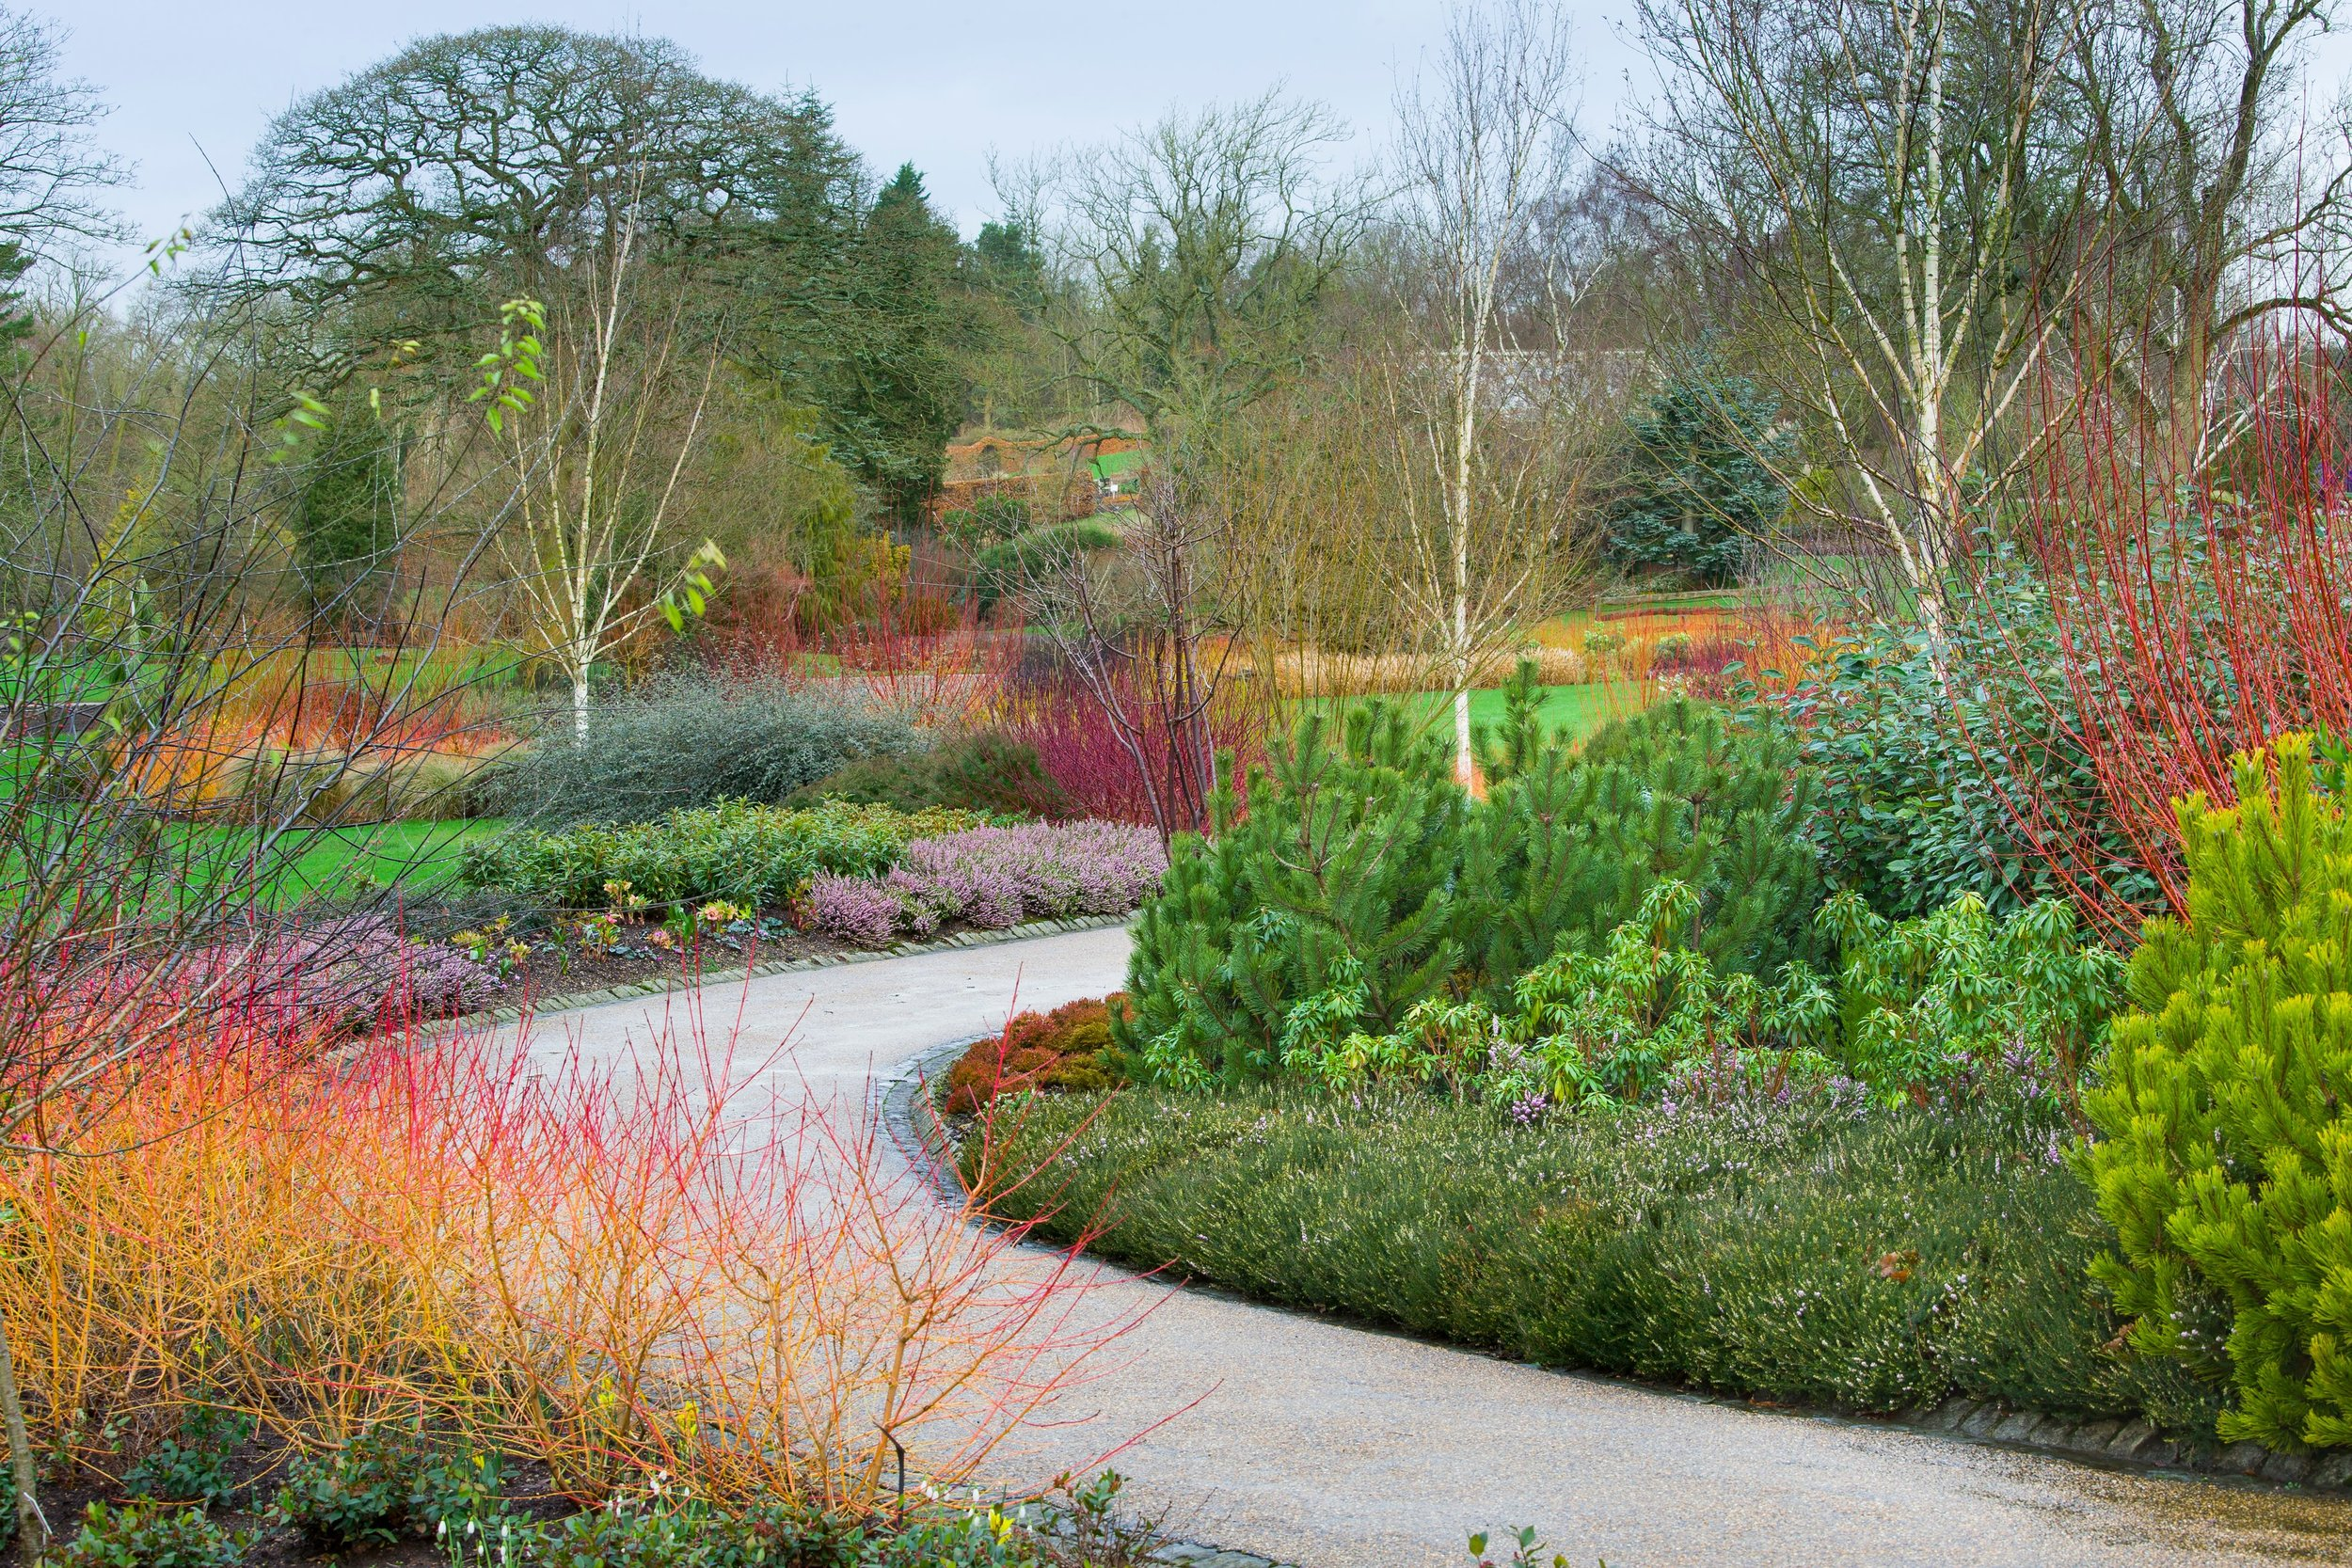 The Winter Walk at RHS Harlow Carr